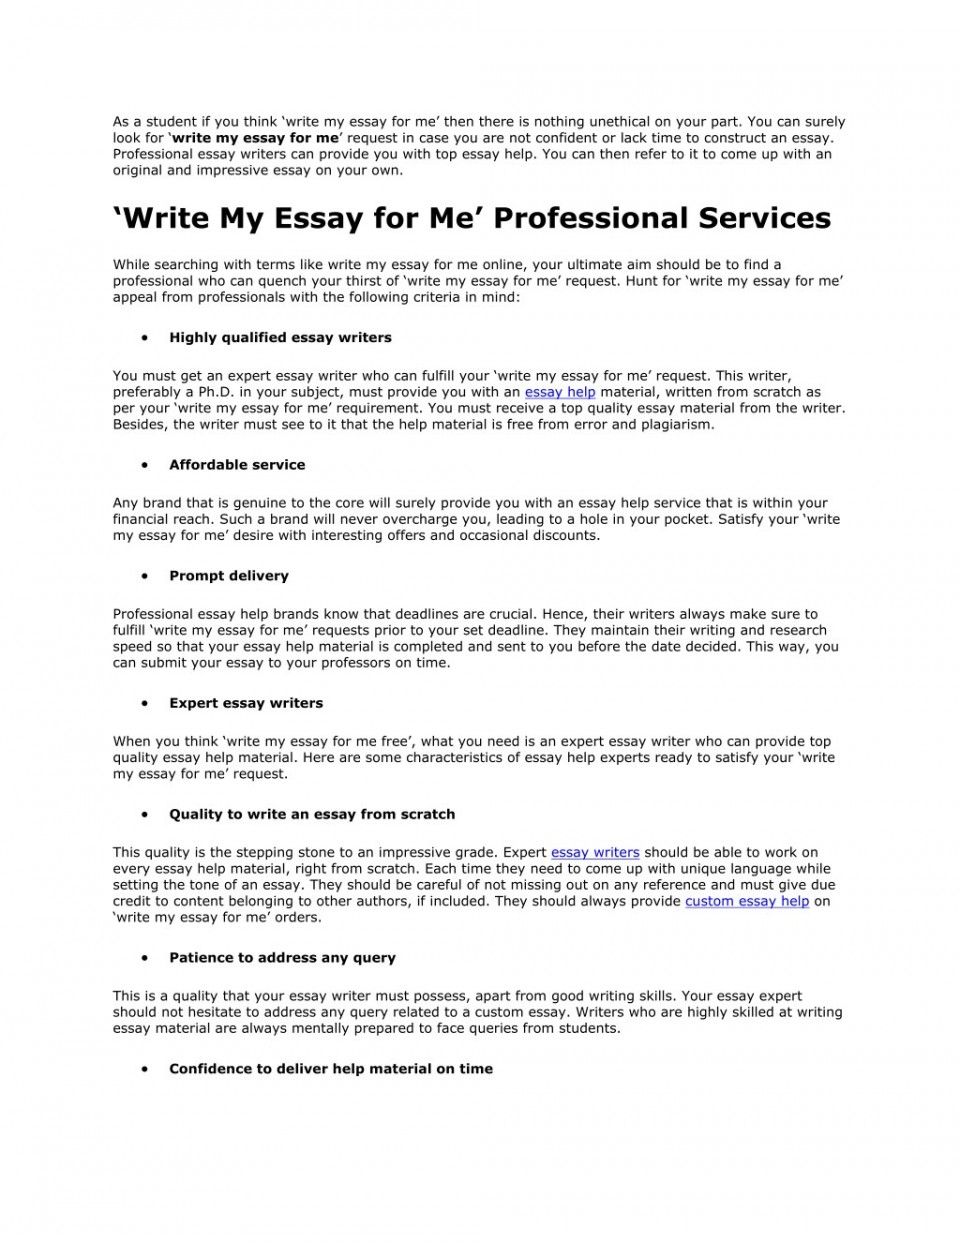 017 Write My Essay For Me Example As Student If You Think Surprising Reviews Canada Custom Cheap 960